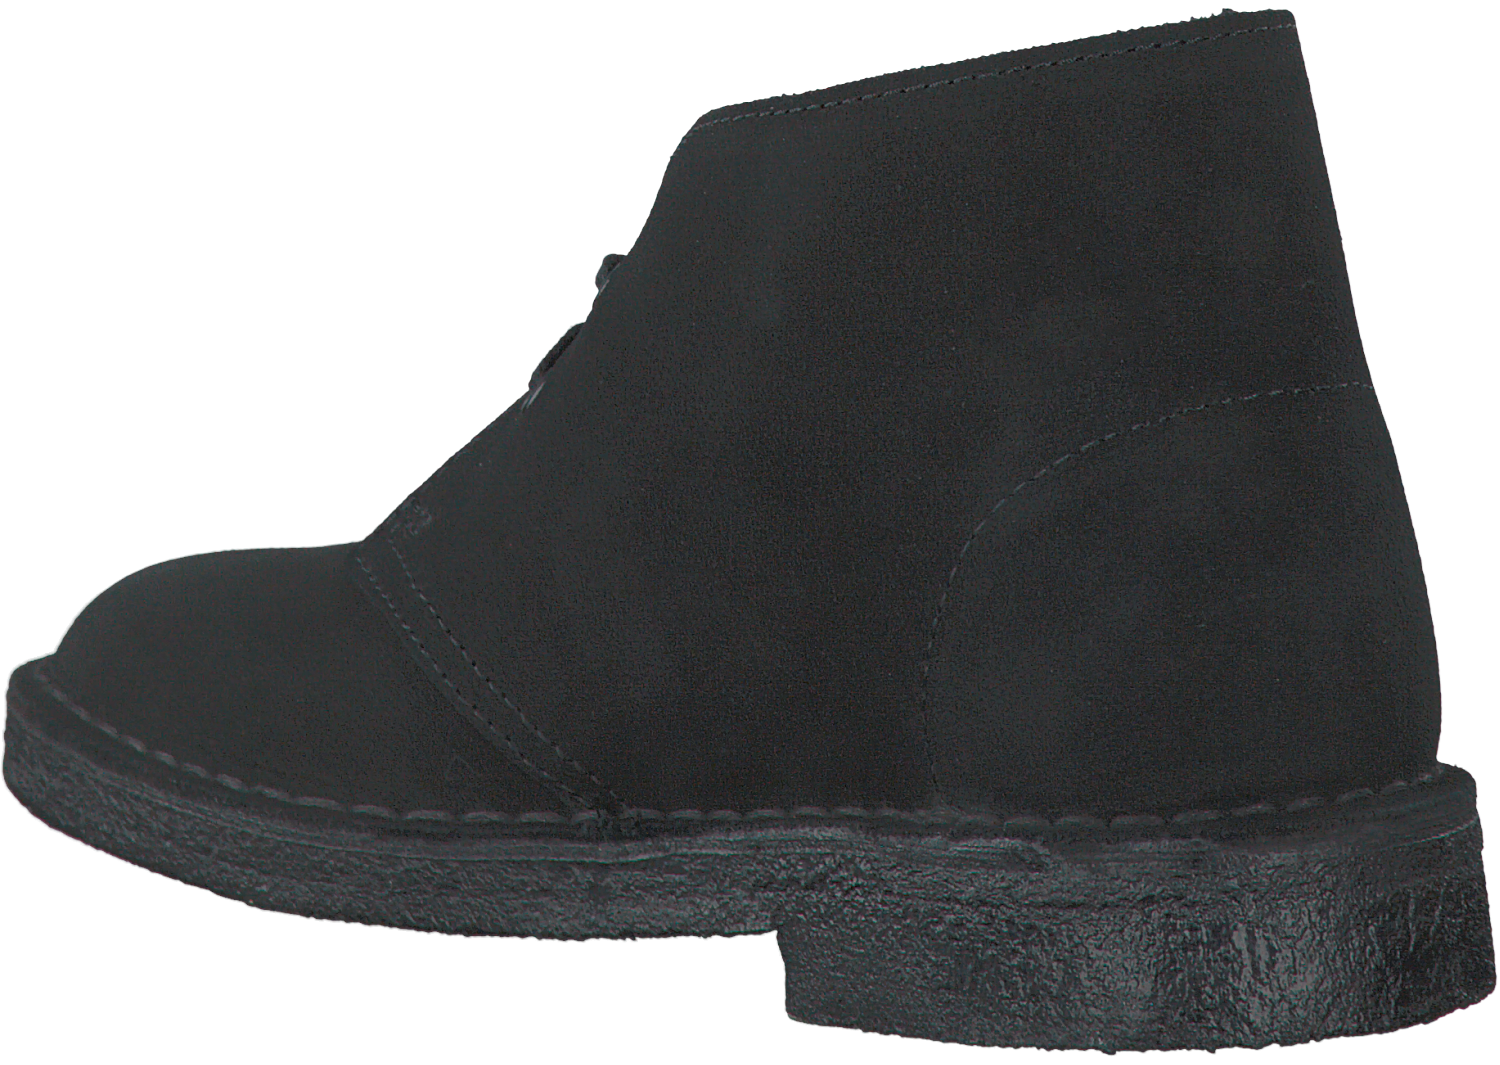 c39e98b9cd4 Zwarte CLARKS Enkelboots DESERT BOOT DAMES - large. Next